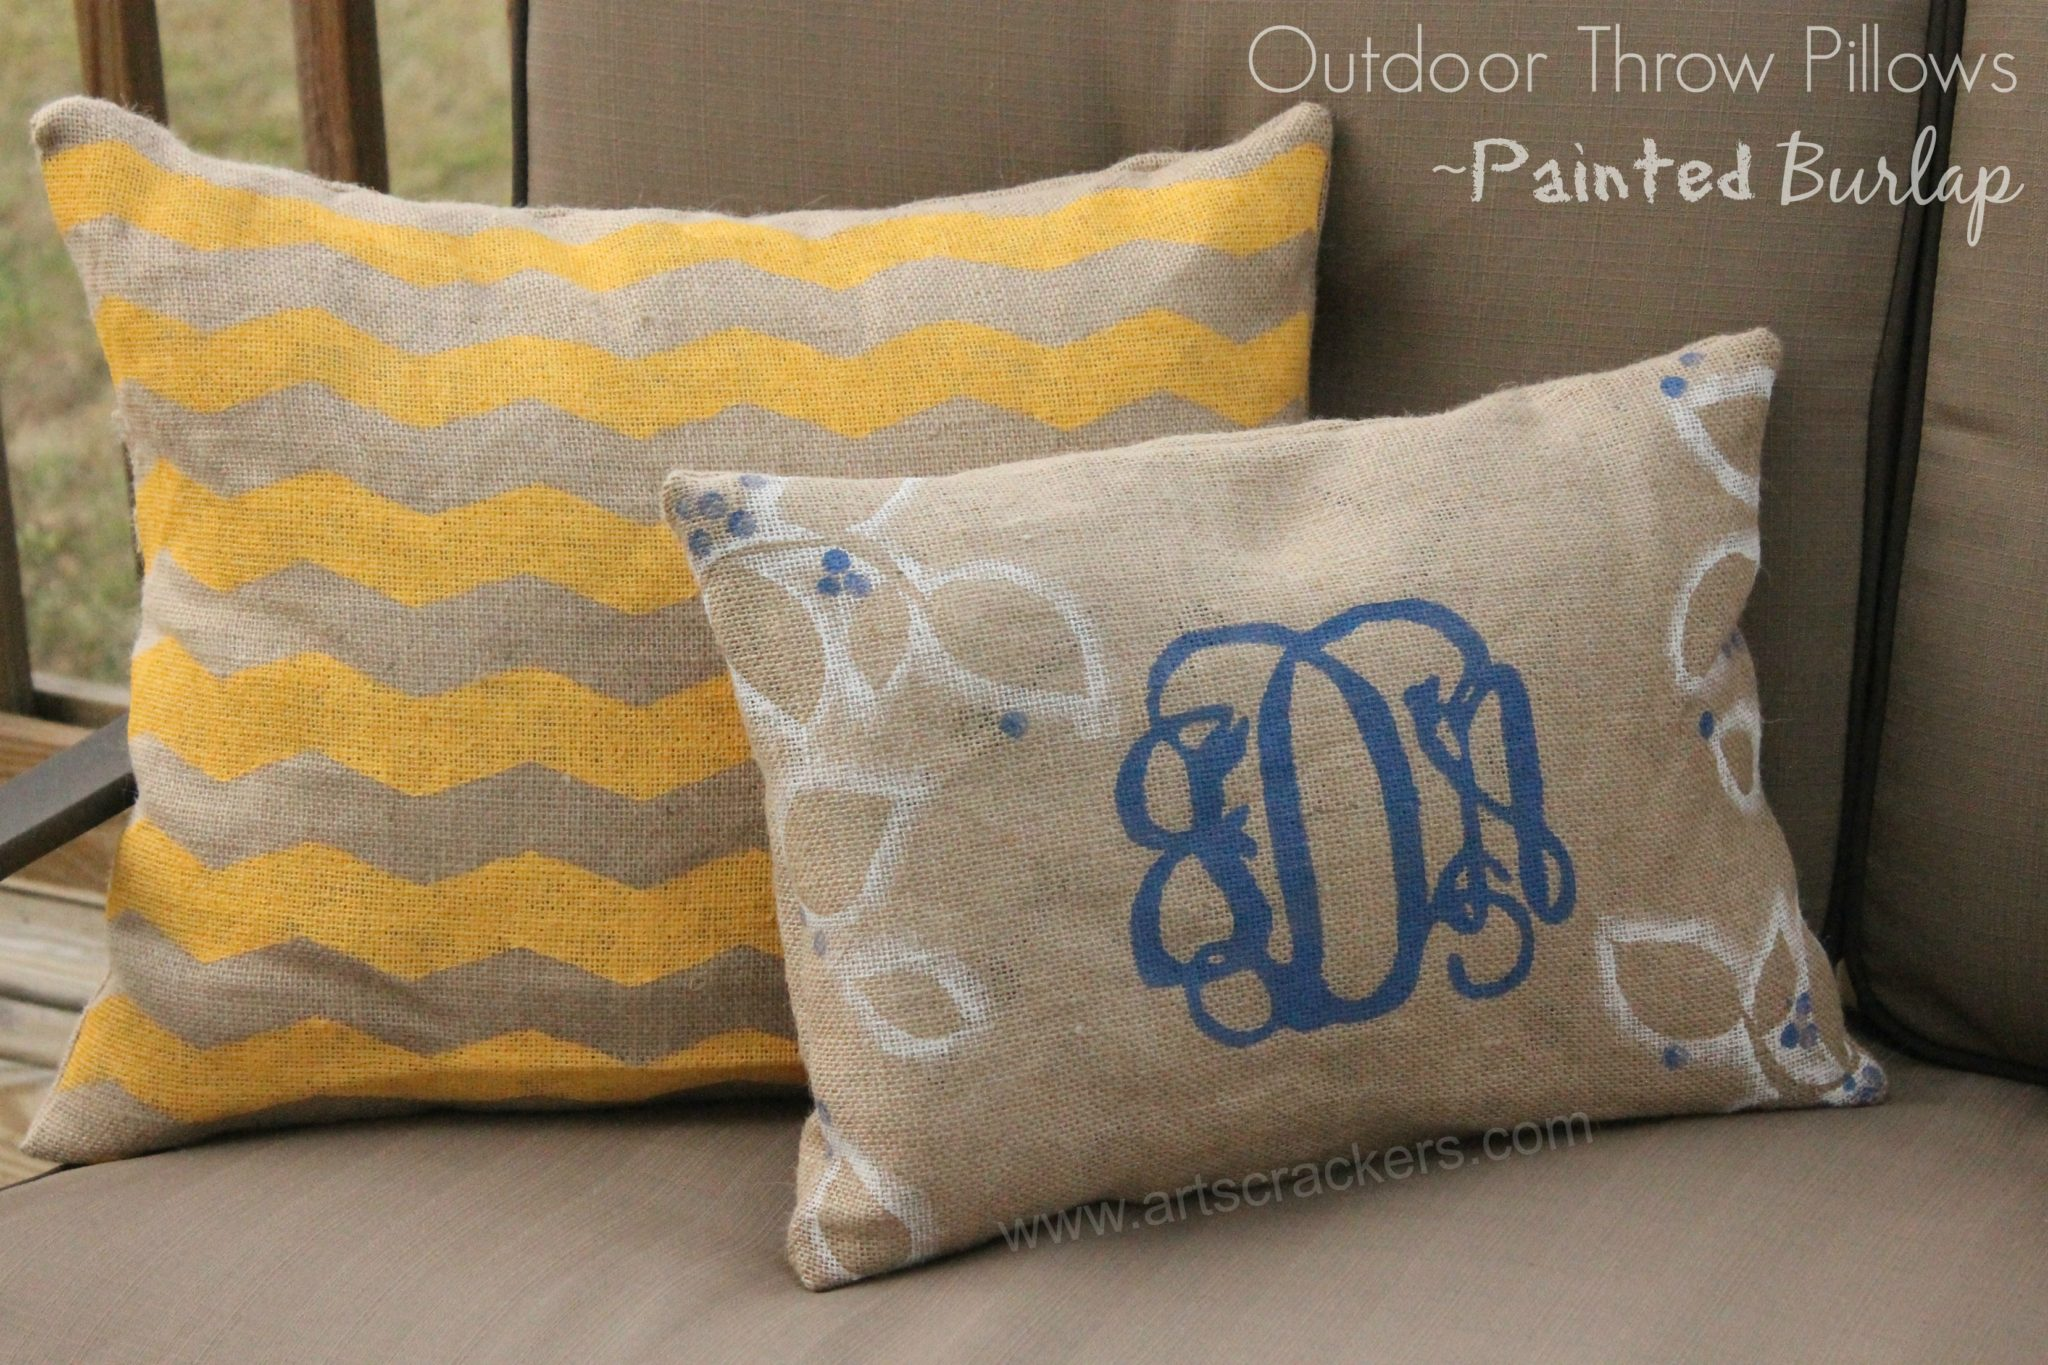 DIY Painted Burlap Outdoor Throw Pillows